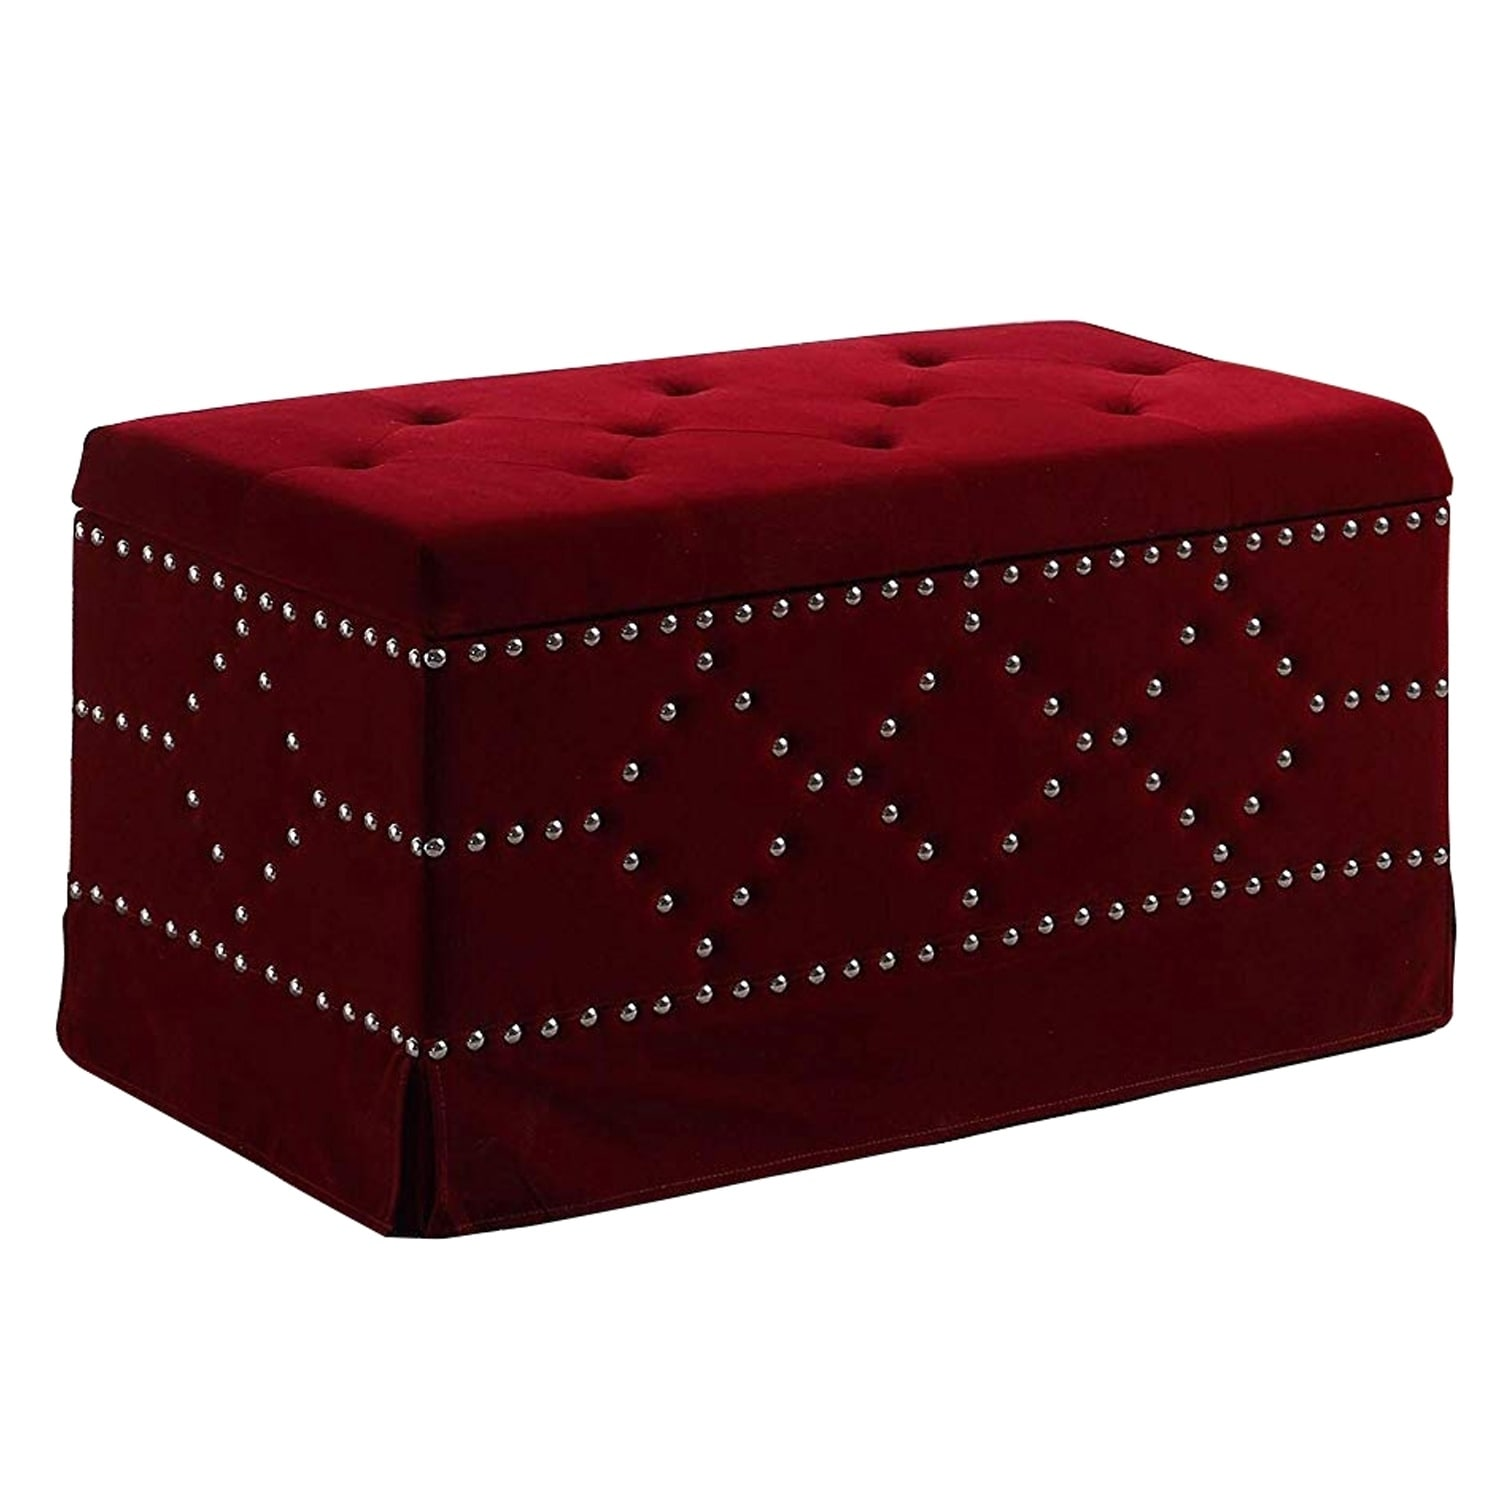 Picture of: Shop Black Friday Deals On Velvet Upholstered Tufted Wooden Storage Bench With Nailhead Trims Red On Sale Overstock 30892592